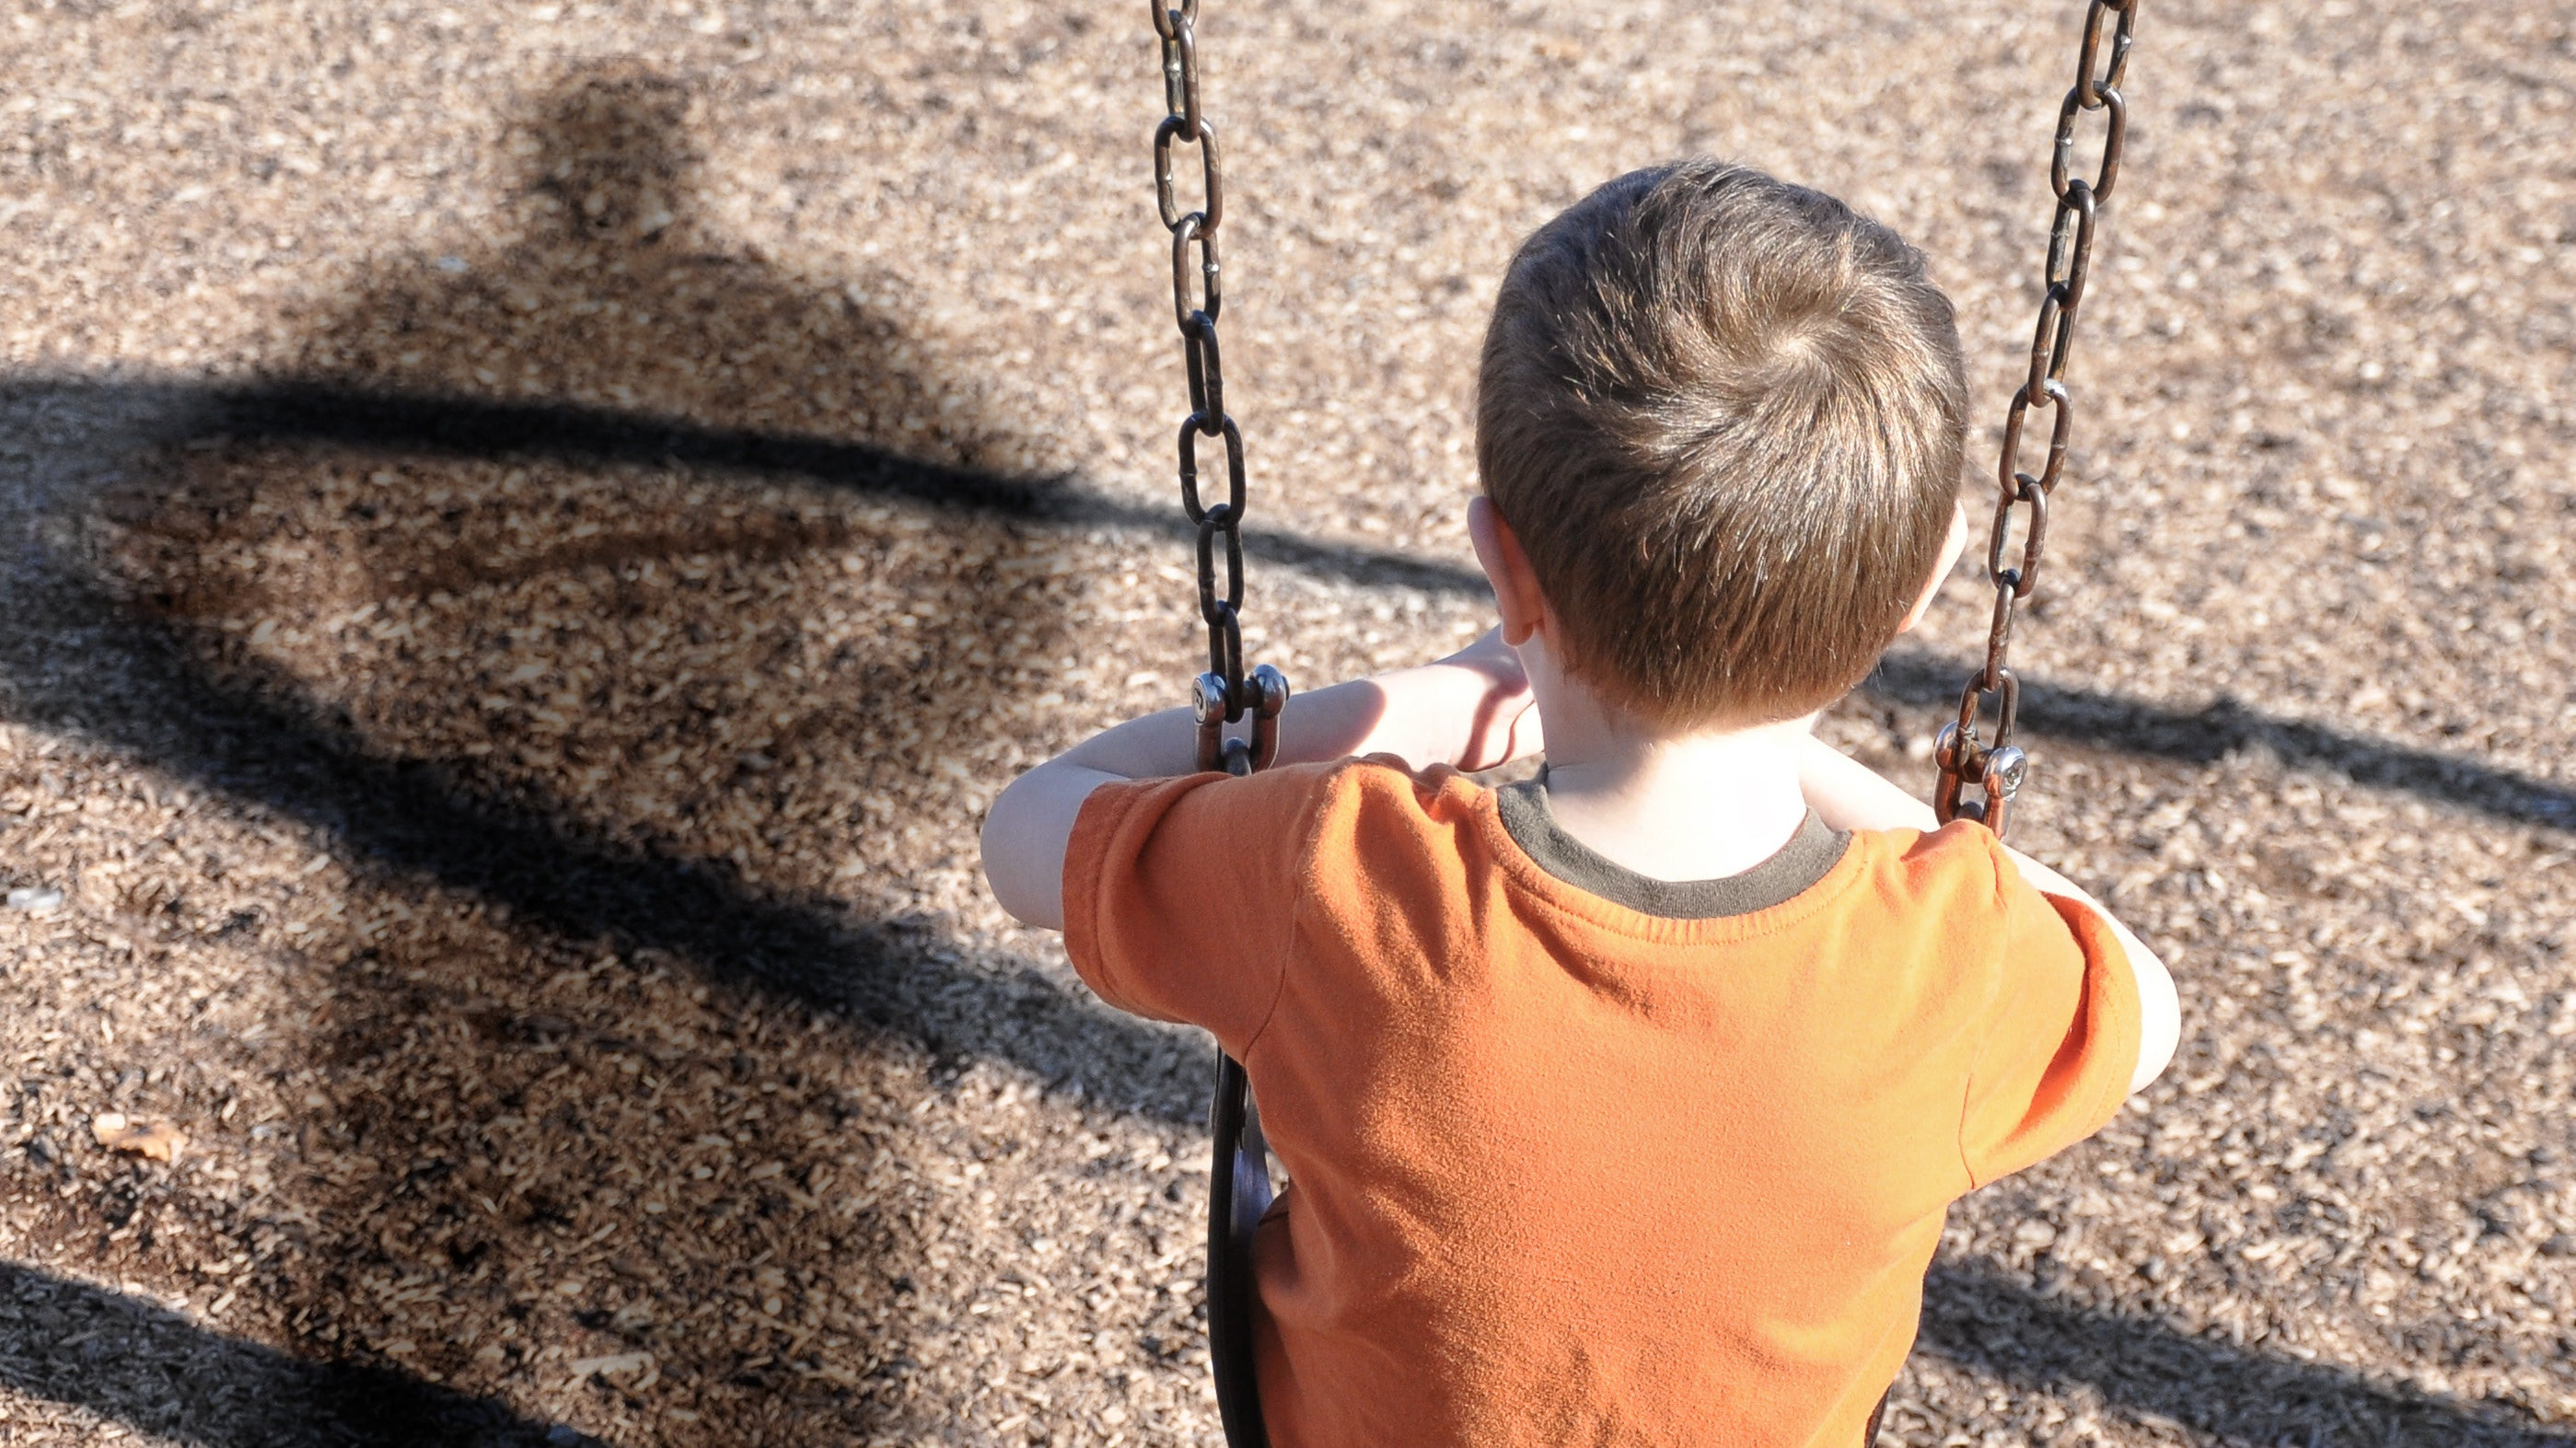 How Do You Help A Young Child Get Over His Fear Of A Neighbour?